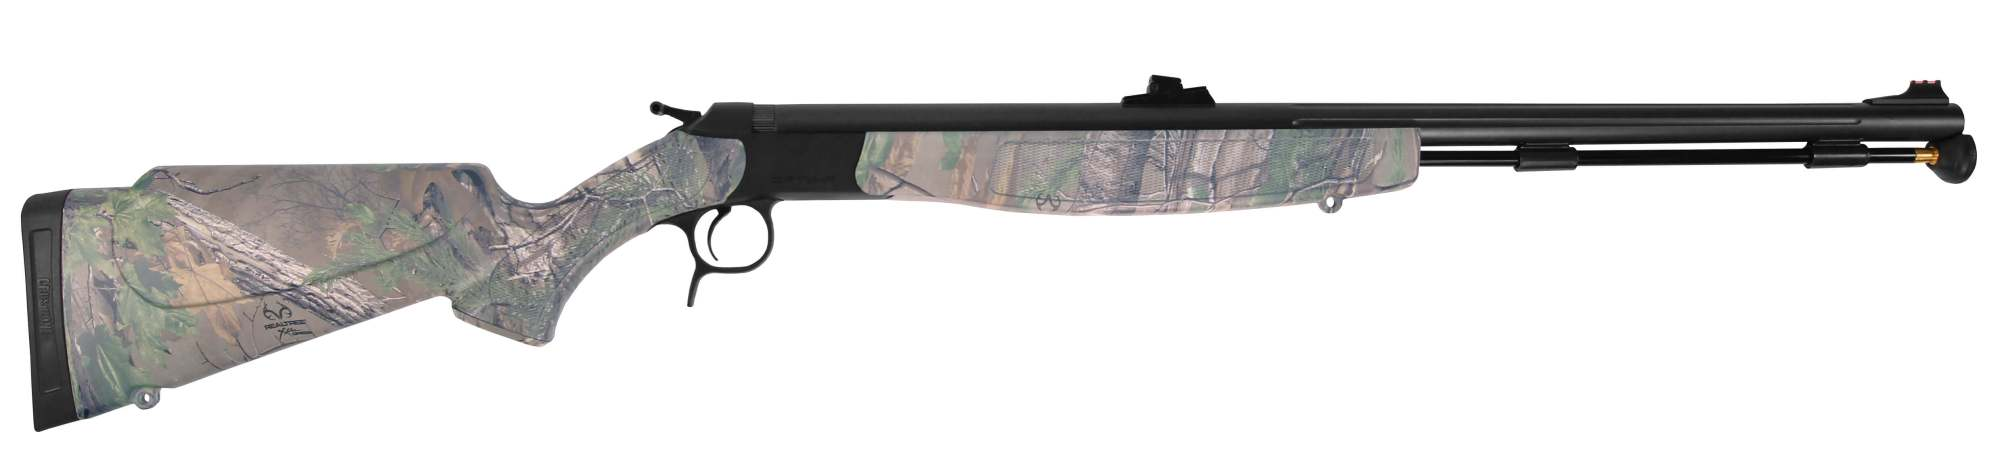 hight resolution of optima v2 nitride stainless steel realtree xtra green camo with fiber optic sights